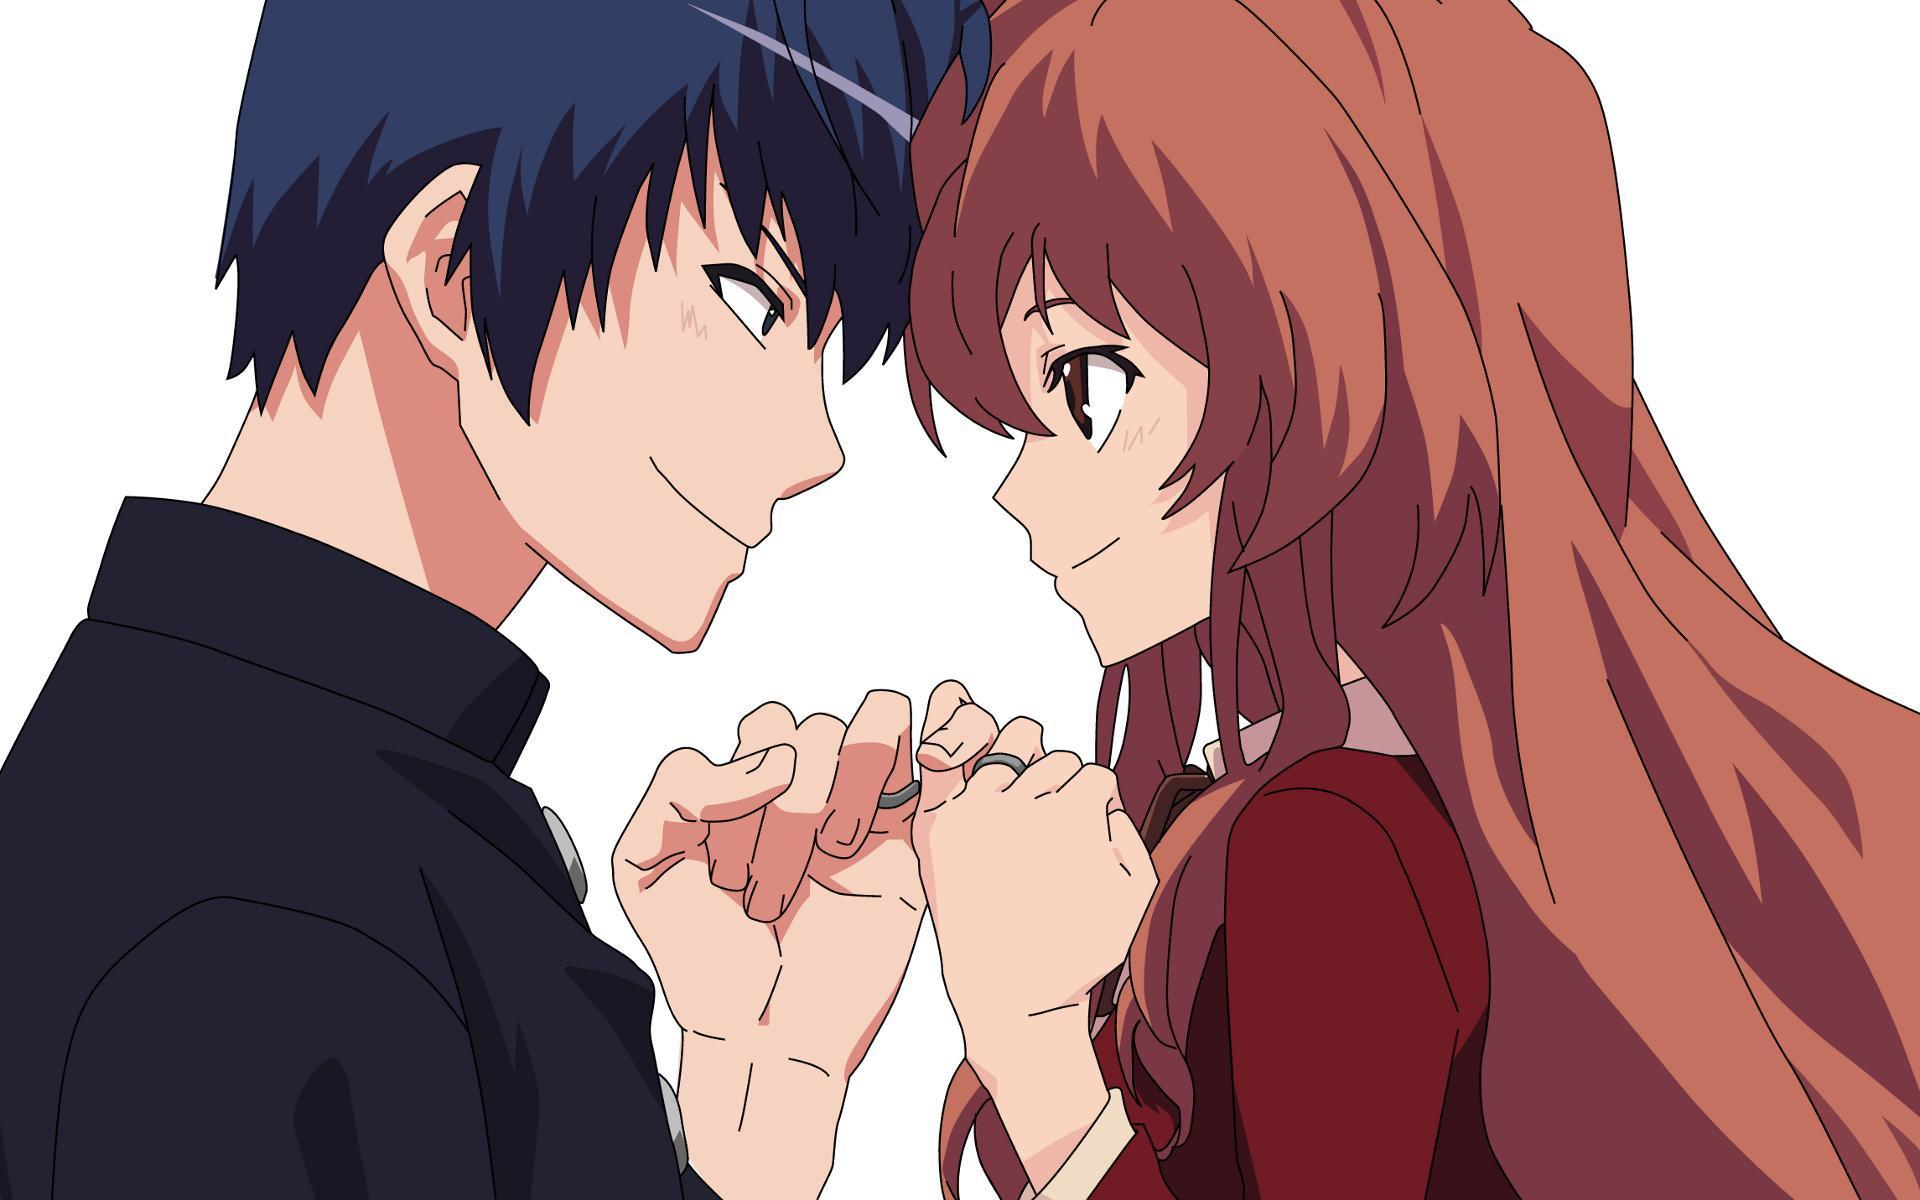 couple anime couples - photo #11